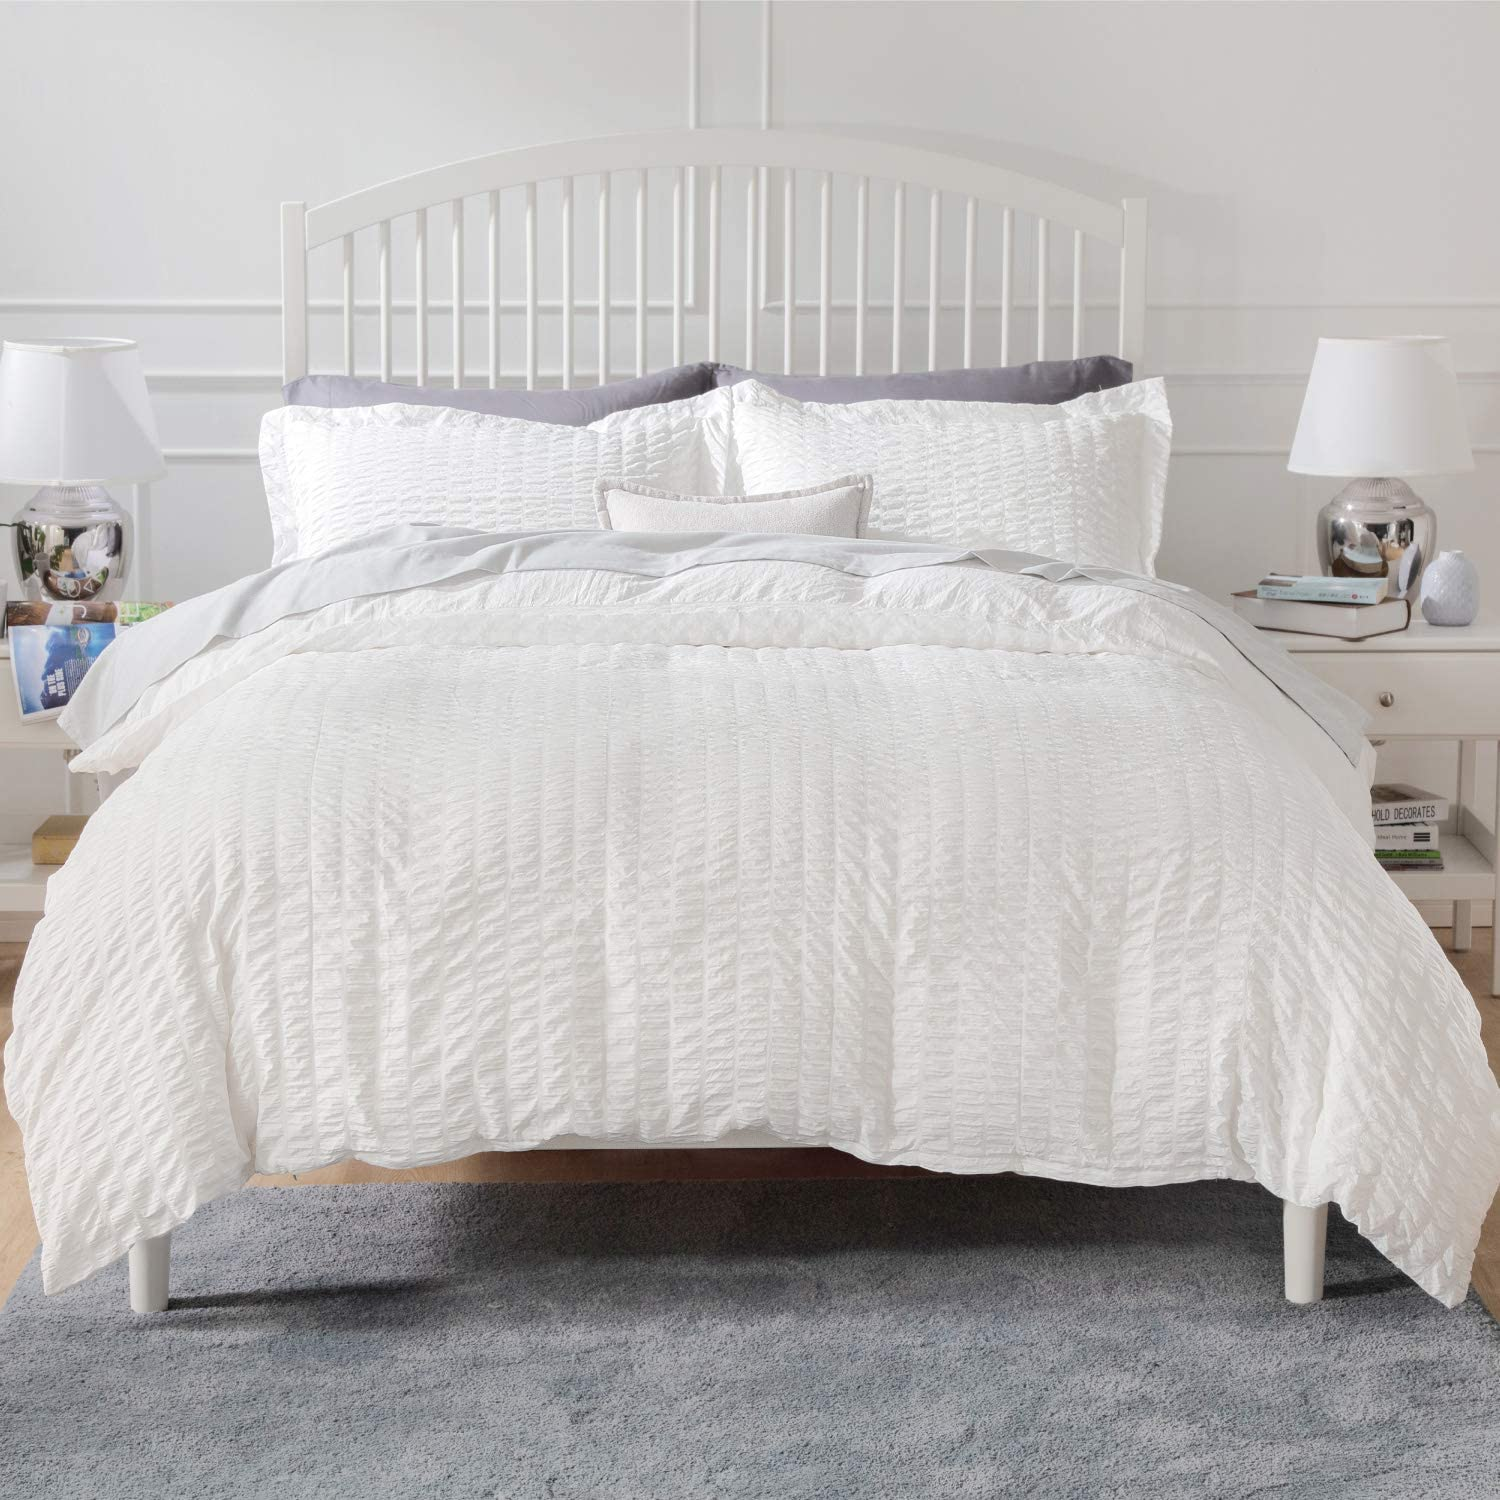 Bedsure White Textured Duvet Cover Queen Size - Seersucker Stripe Comforter Cover with Zipper Closure 3 Pieces (1 Duvet Cover + 2 Pillow Shams, 90 x 90 inches) : Home & Kitchen